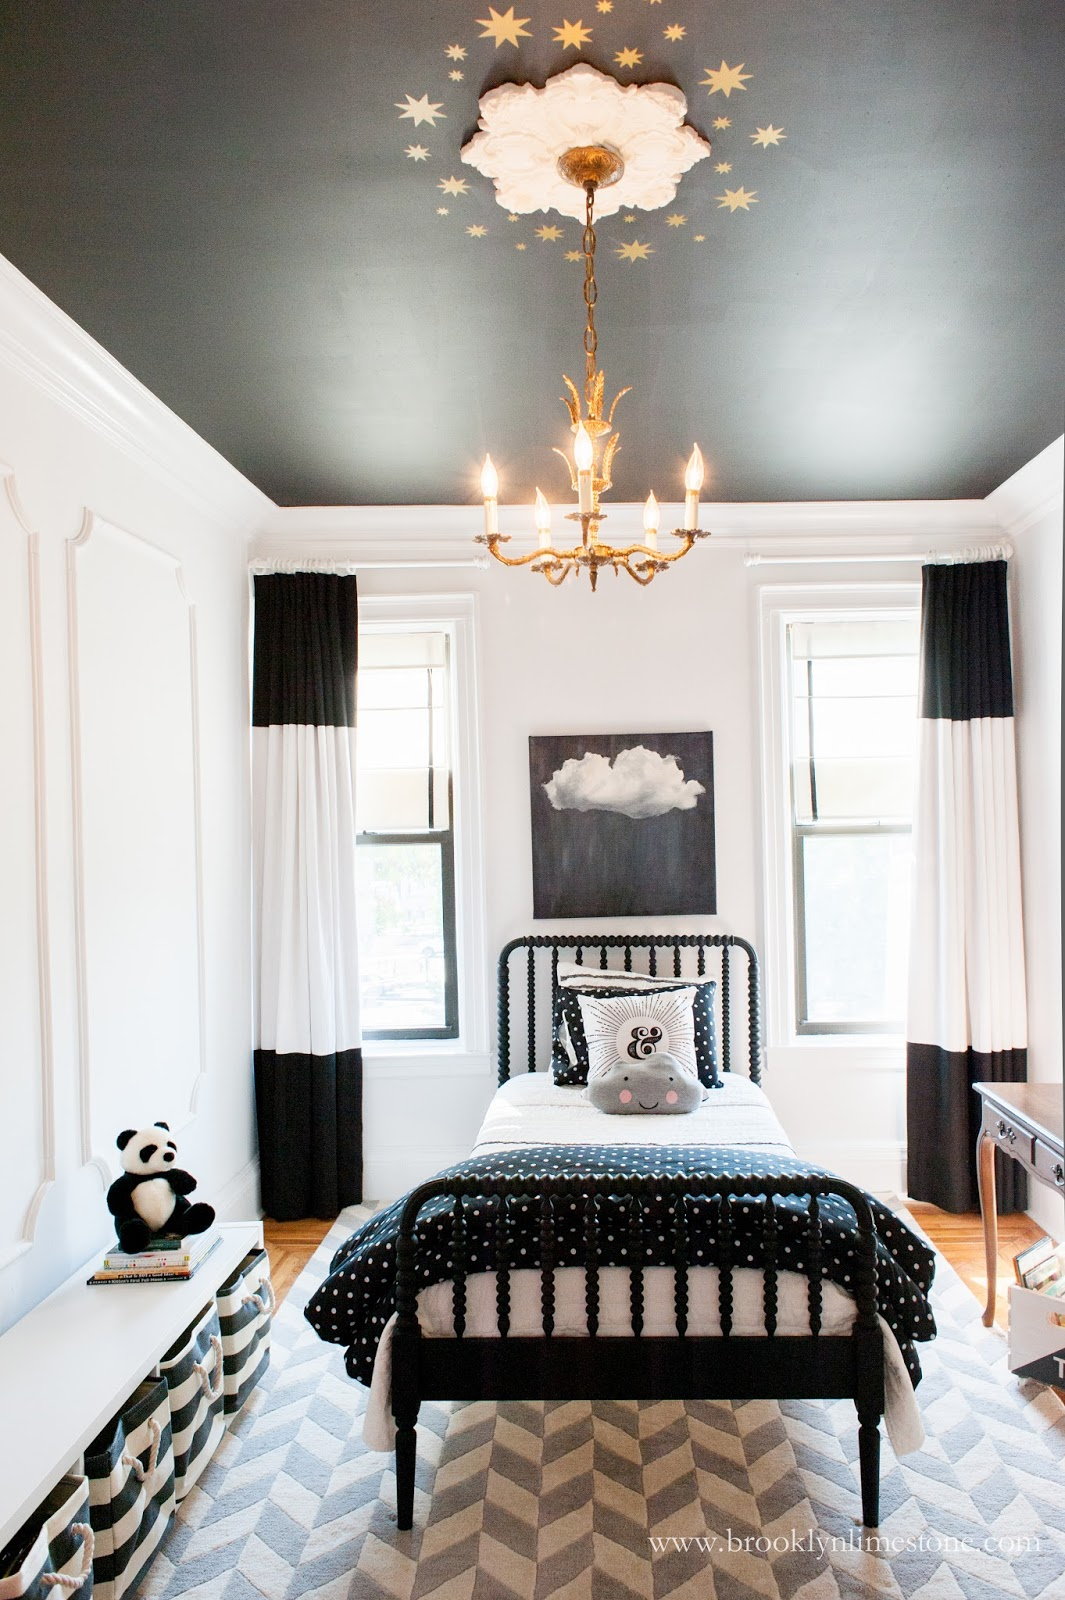 Girl's bedroom with black ceiling, white walls, black and white drapes